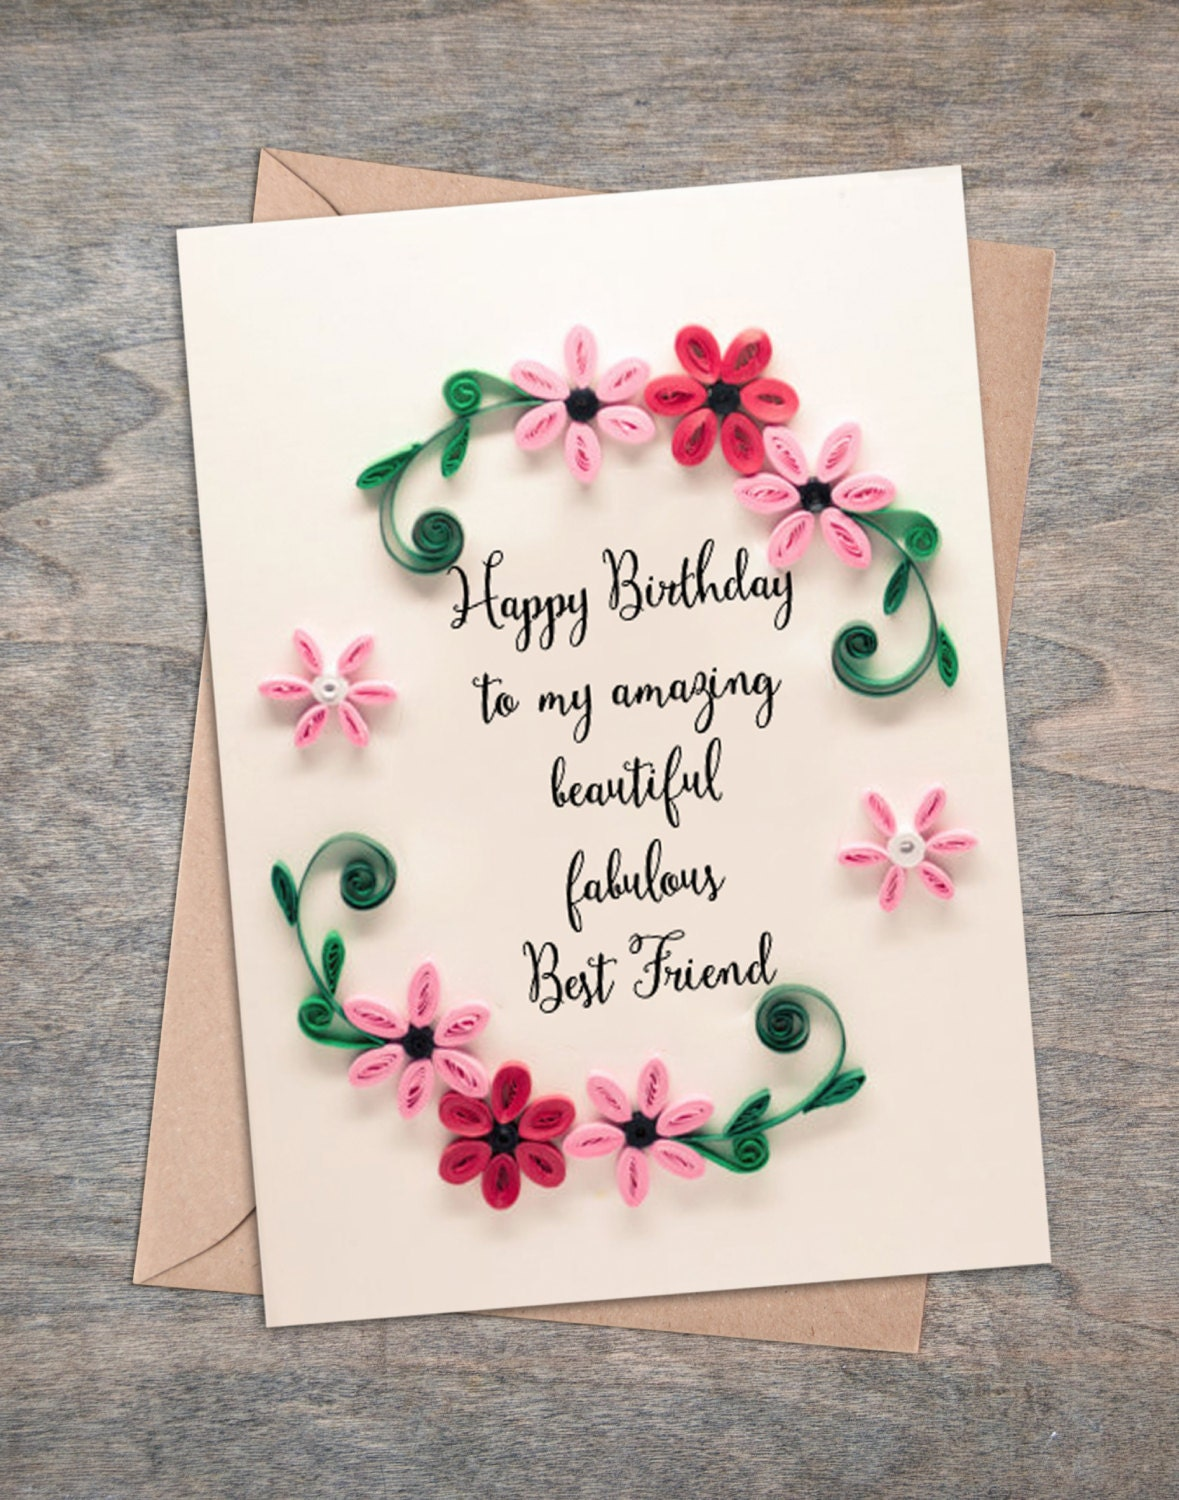 Best Friend Birthday Card Girlfriend Birthday Card Happy – Happy Birthday Cards for a Friend